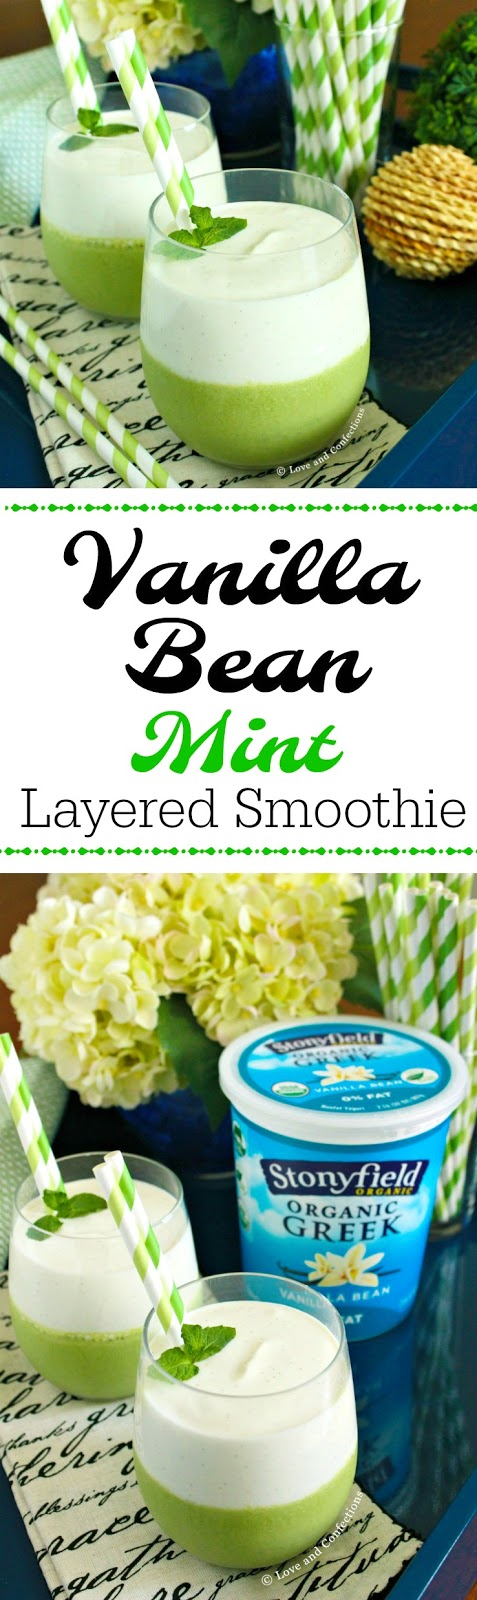 http://www.loveandconfections.com/2017/06/vanilla-bean-and-mint-layered-smoothie.html